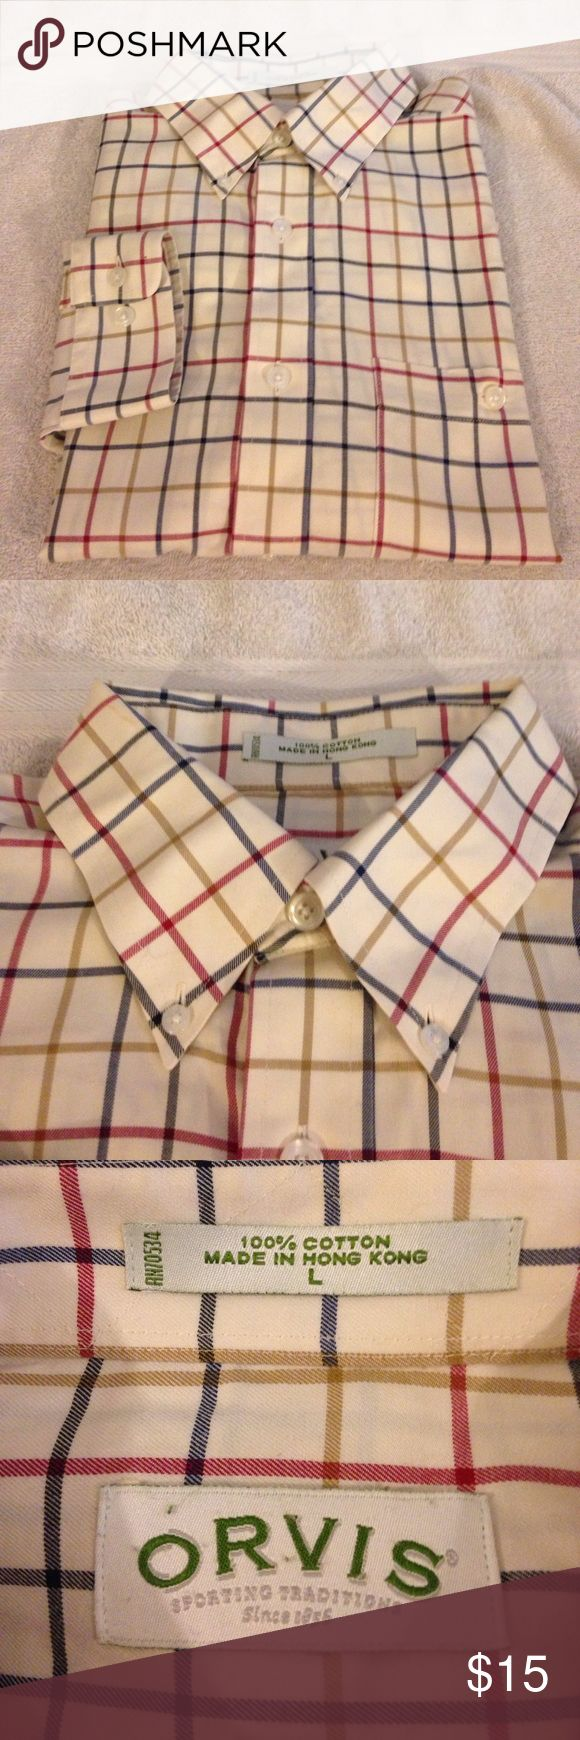 Orvis Tan w/ Red, Navy & Gold Plaid Shirt L Orvis Tan with Red, Navy and Gold Plaid Shirt size L! Like new! Please make reasonable offers and bundle! Ask questions :) Orvis Shirts Casual Button Down Shirts